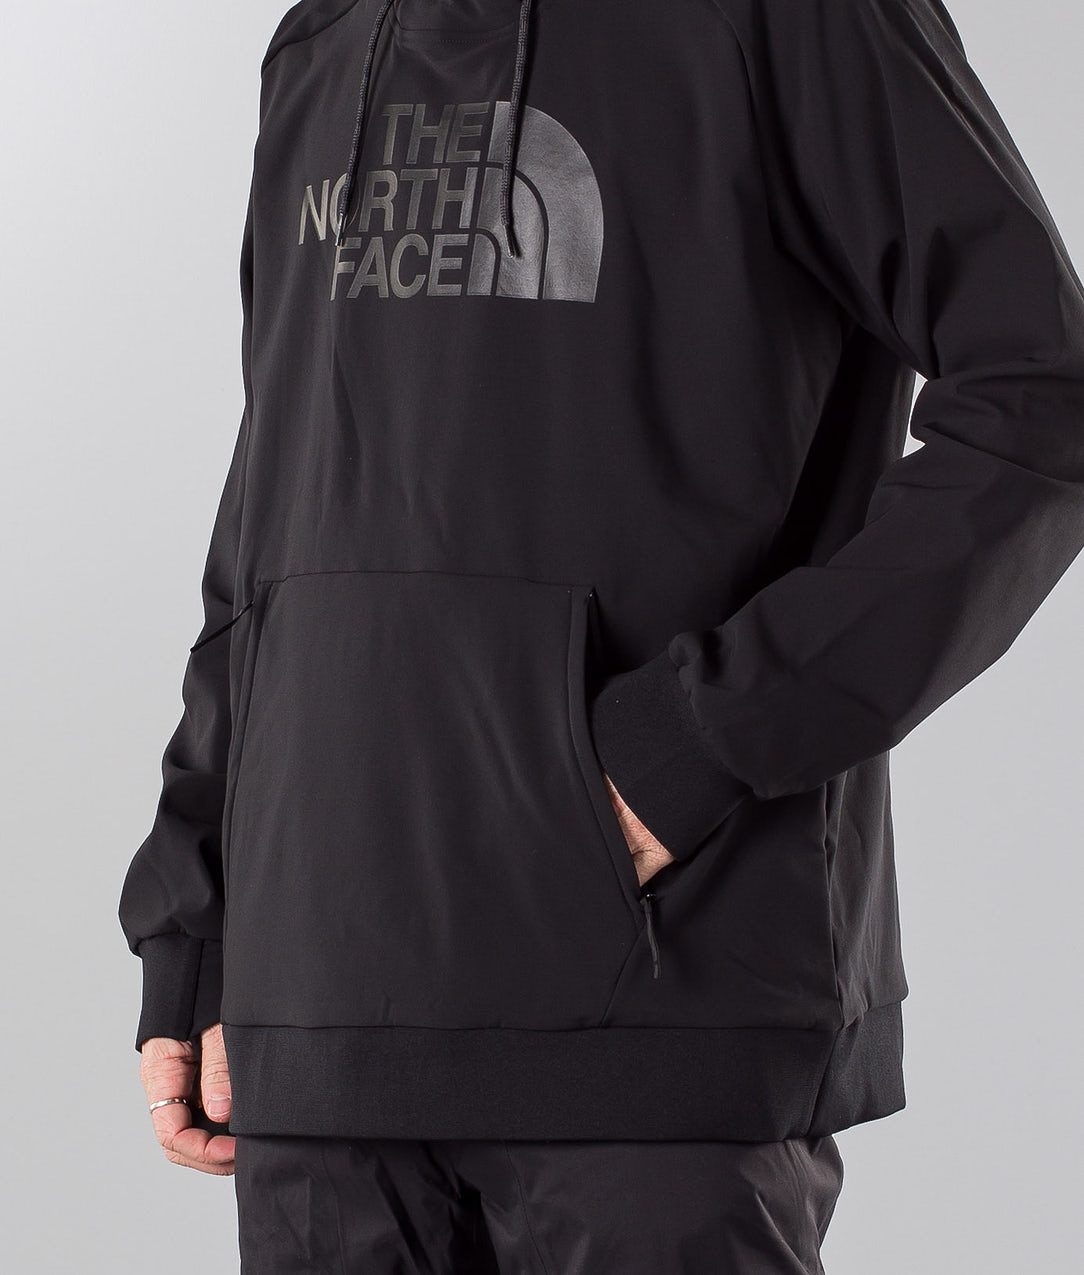 sale retailer 9c1f2 9e246 The North Face Tekno Logo Hoodie Snowboard Jacket Black